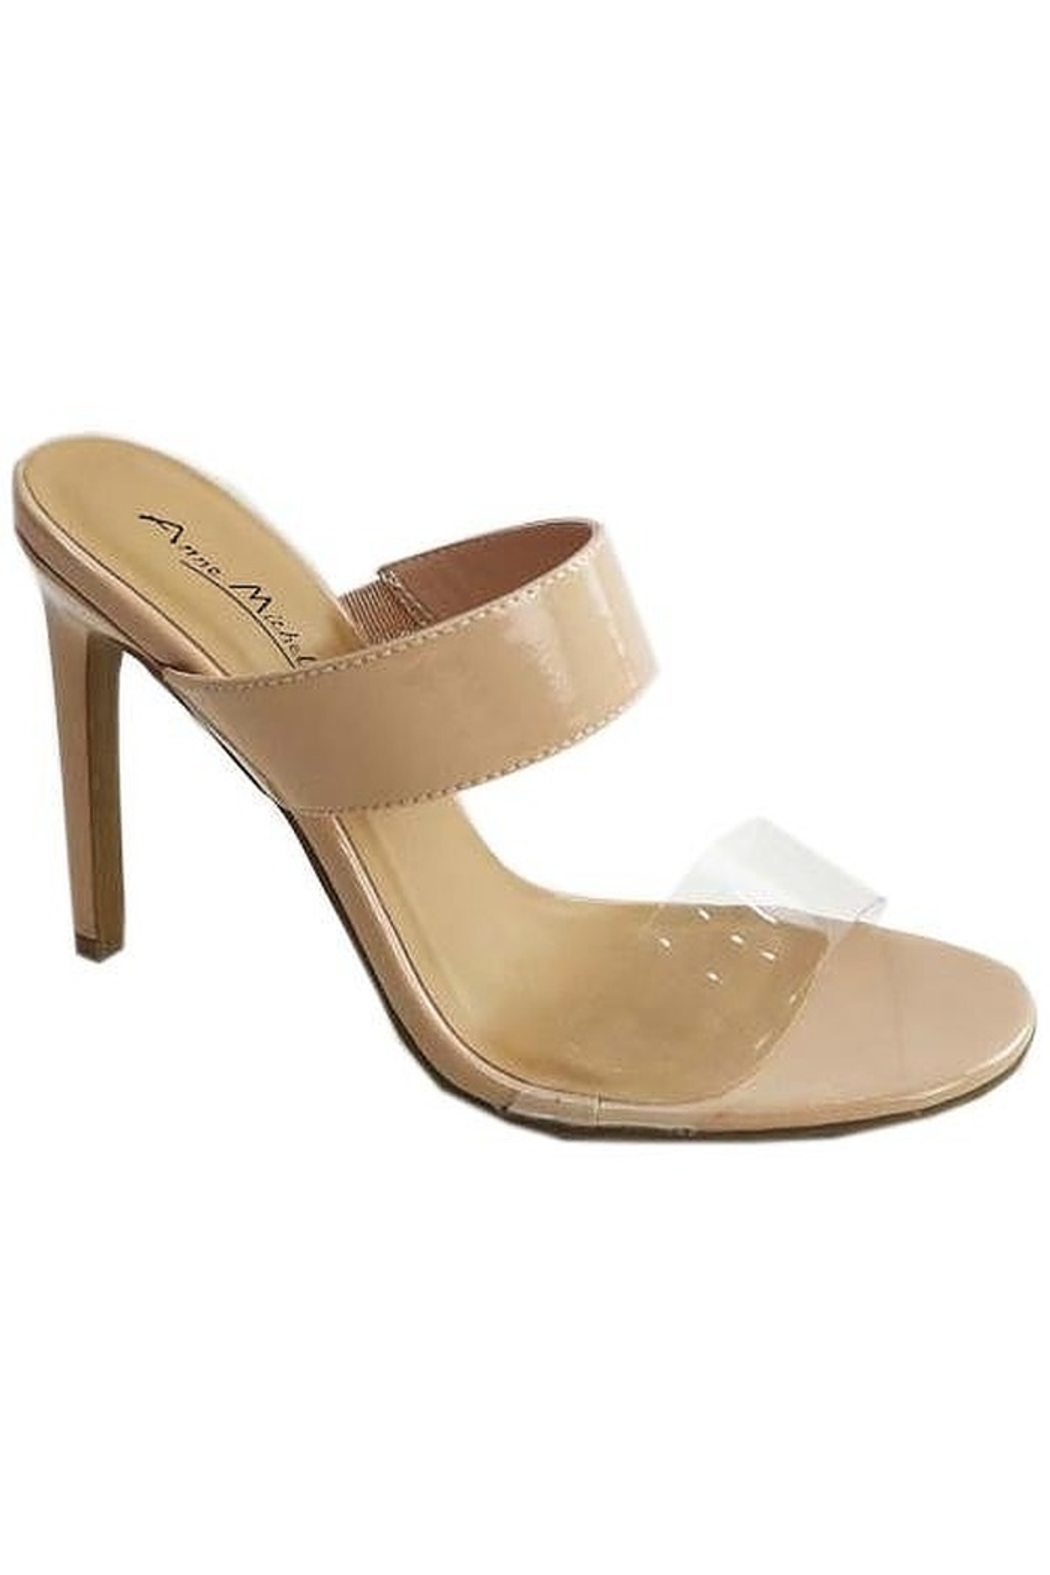 anne michelle Timeless-22 Heel - Front Cropped Image